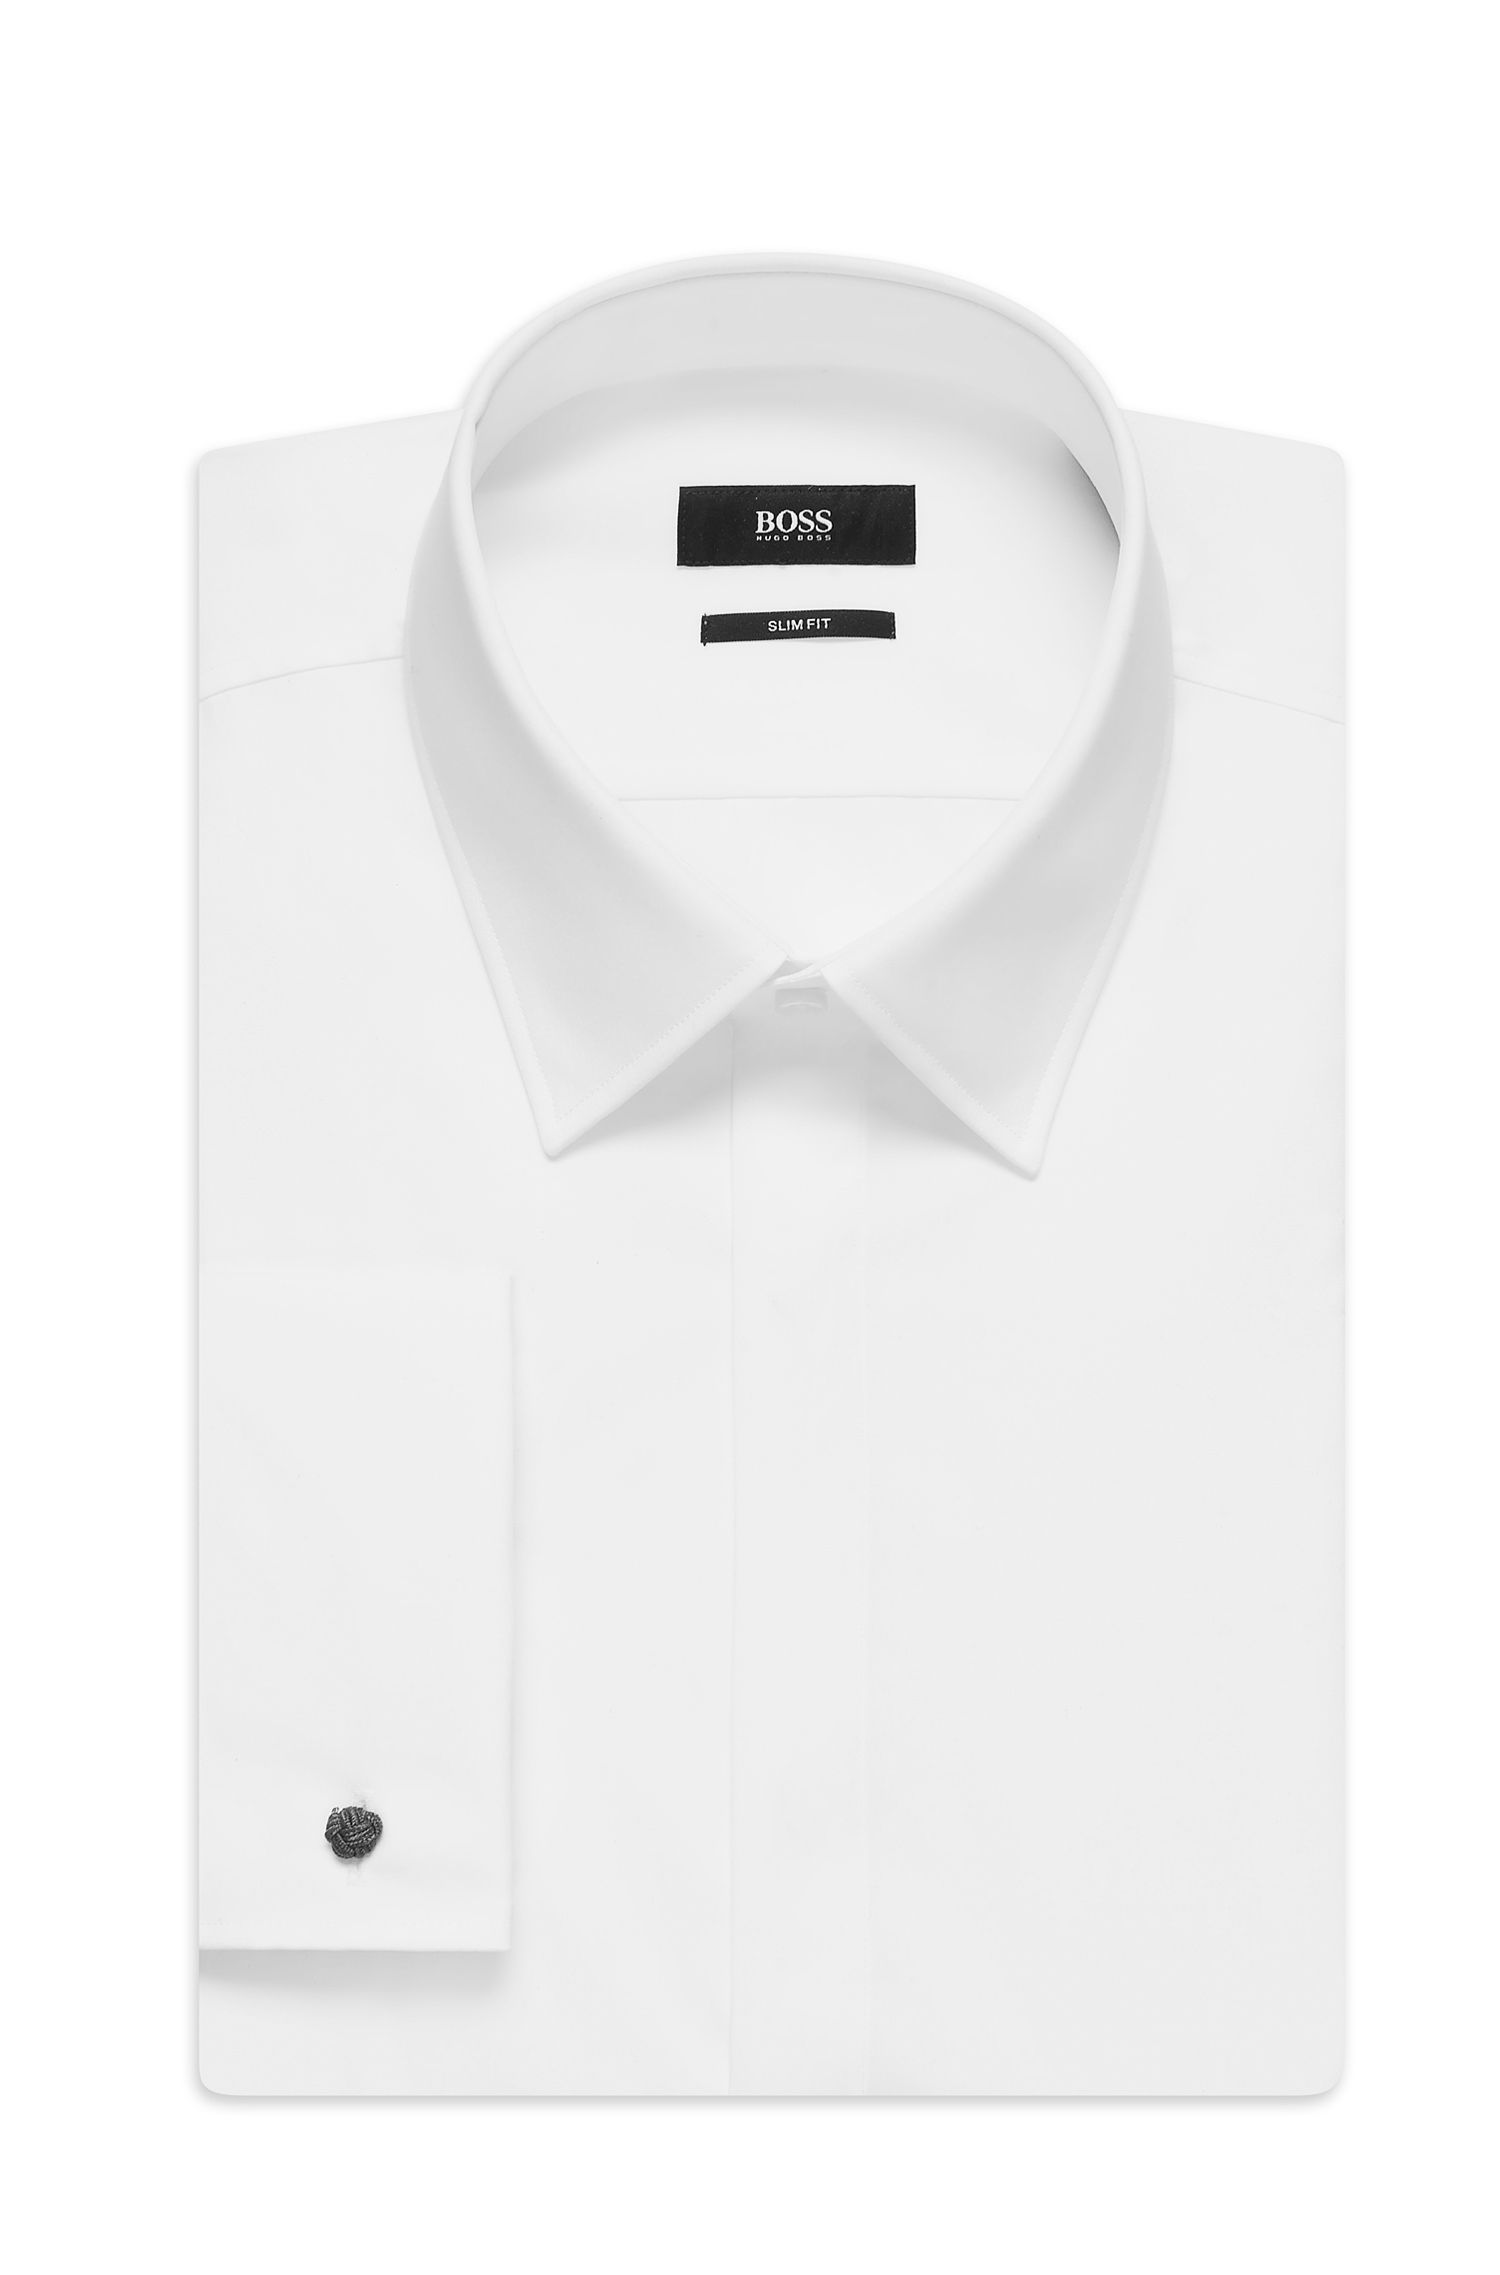 'Ilias' | Slim Fit, French Cuff Easy Iron Cotton Dress Shirt